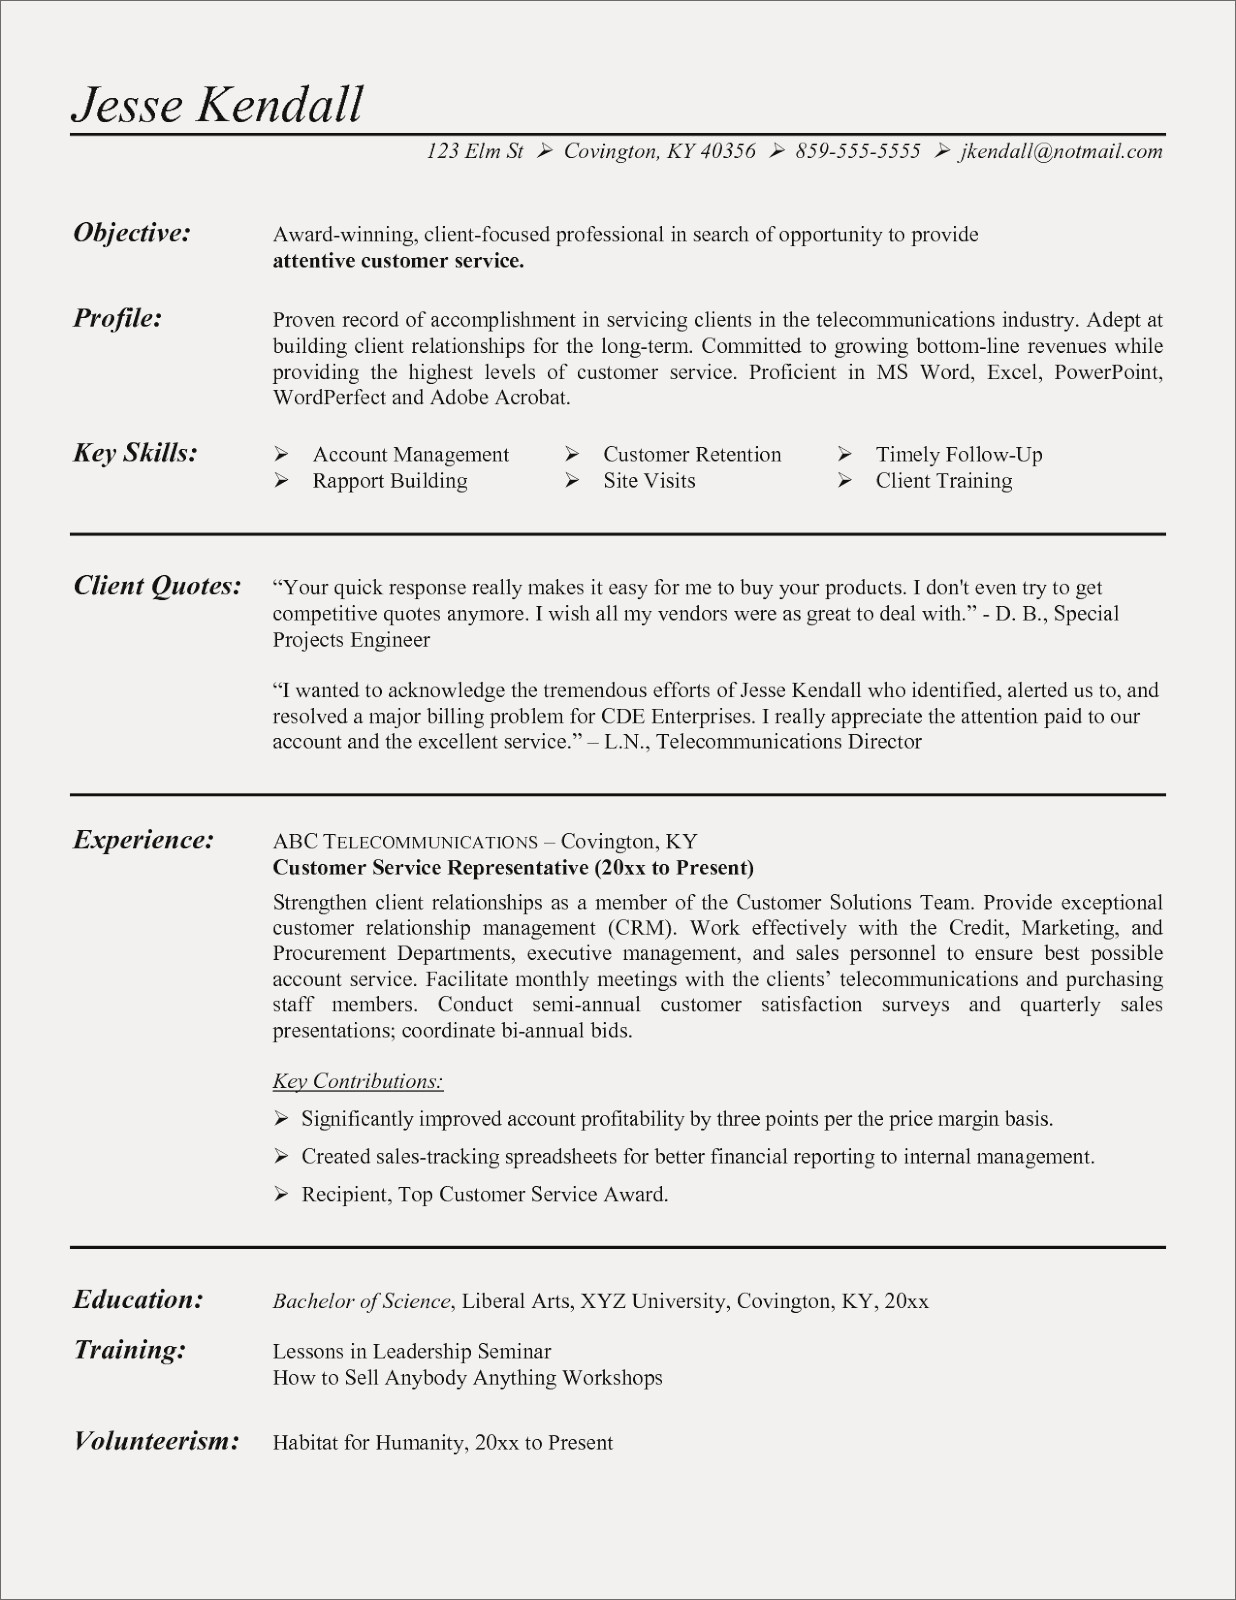 Director Resume Template - Resume Templates for Customer Service Fresh Beautiful Grapher Resume